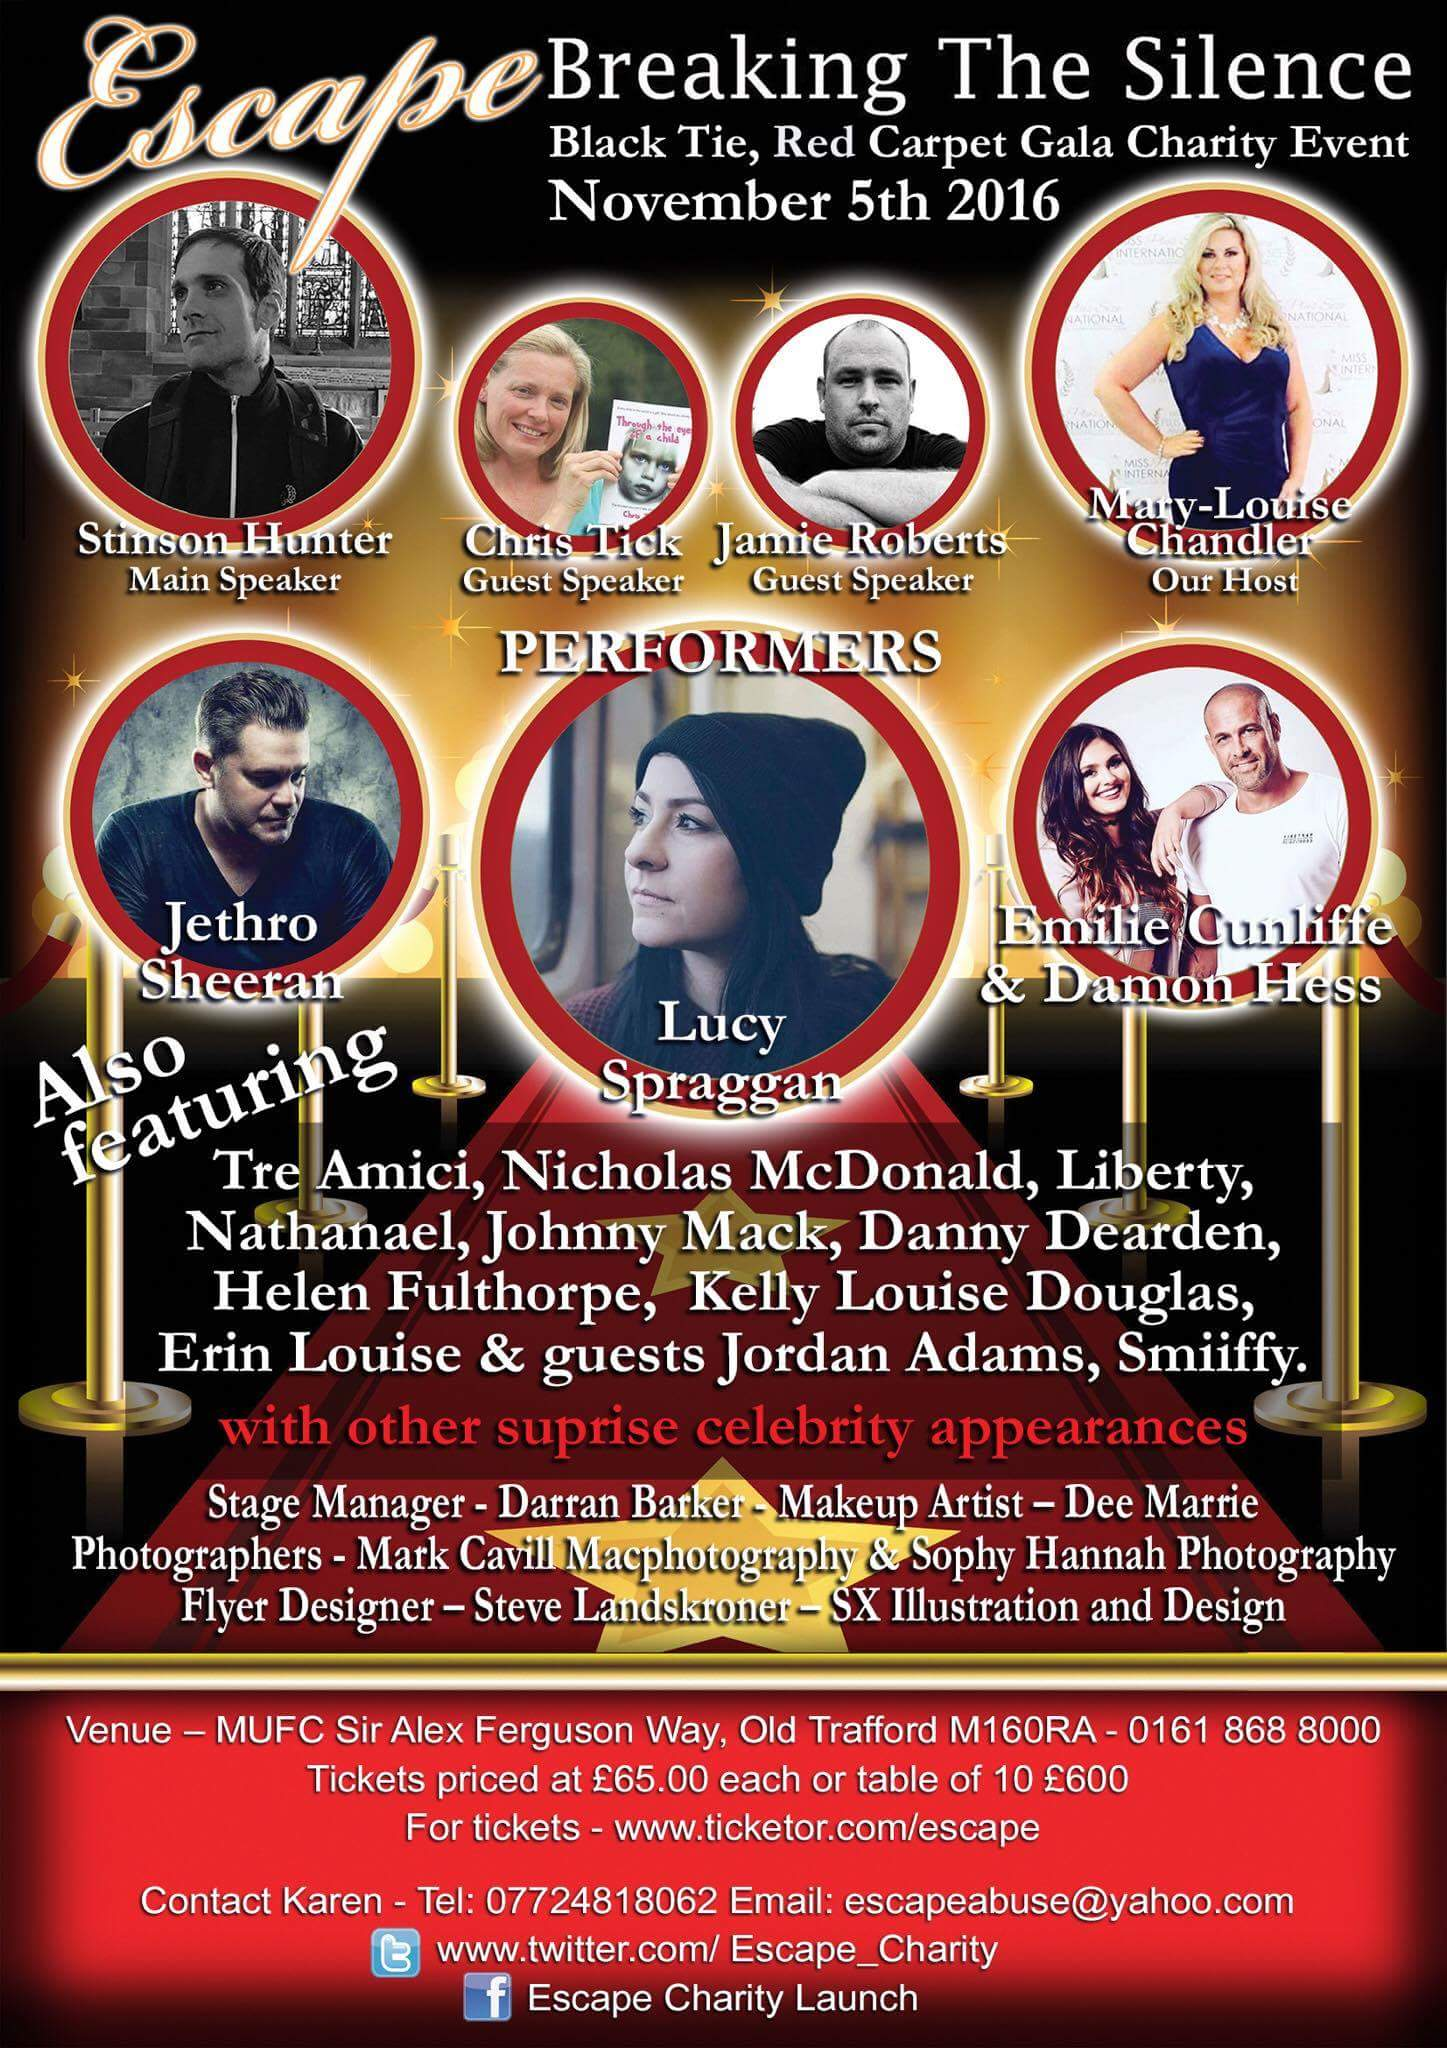 RT @Escape_Charity: Tkts will not be on the door.get them now to avoid disappointment #BREAKINGTHESILENCE @Damon_Hess @EmilieCunliffe https…